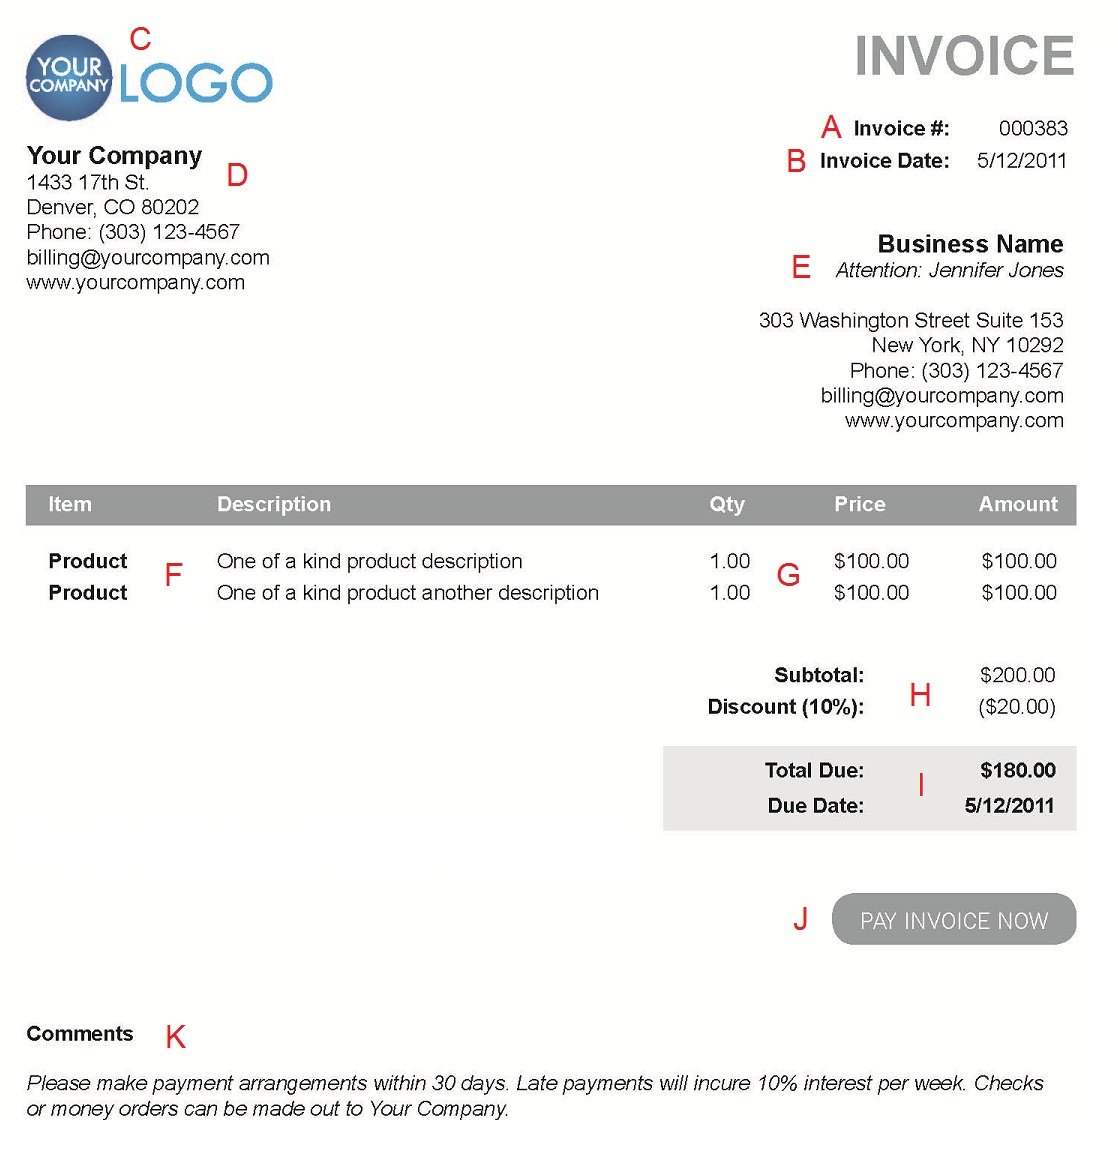 Ebitus  Prepossessing The  Different Sections Of An Electronic Payment Invoice With Entrancing A  With Beautiful Canada Customs Invoice Template Also Invoice Slip In Addition Payment Invoice Template Word And Bmw Invoice Configurator As Well As Vat Invoicing Additionally Ebay Send An Invoice From Paysimplecom With Ebitus  Entrancing The  Different Sections Of An Electronic Payment Invoice With Beautiful A  And Prepossessing Canada Customs Invoice Template Also Invoice Slip In Addition Payment Invoice Template Word From Paysimplecom